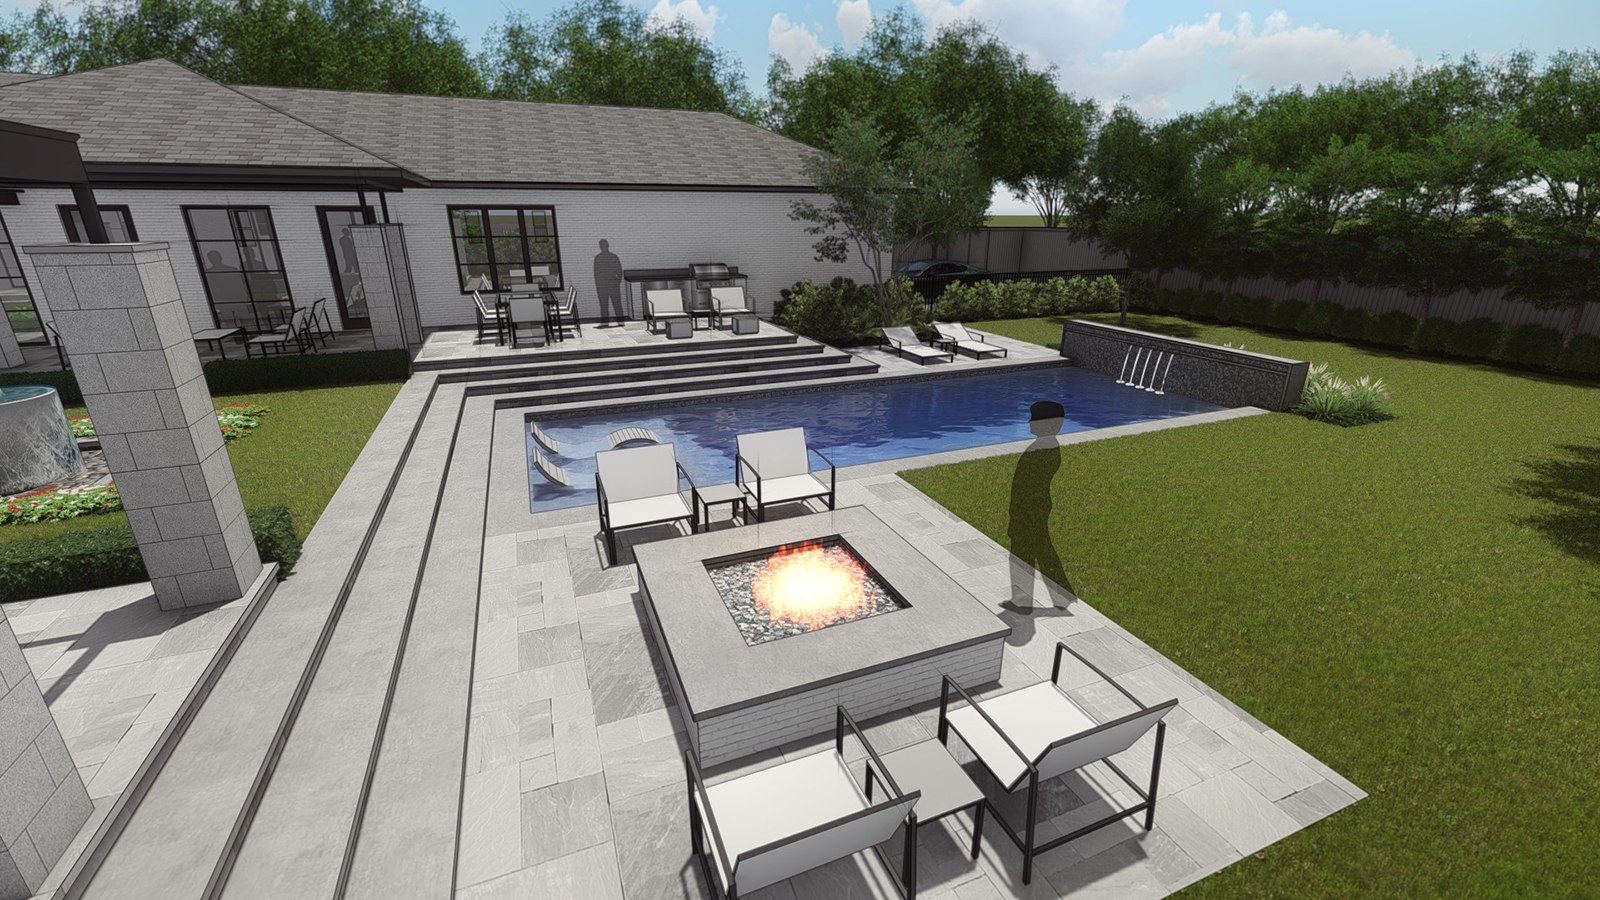 Copy of REVISED - FIRE PIT AREA